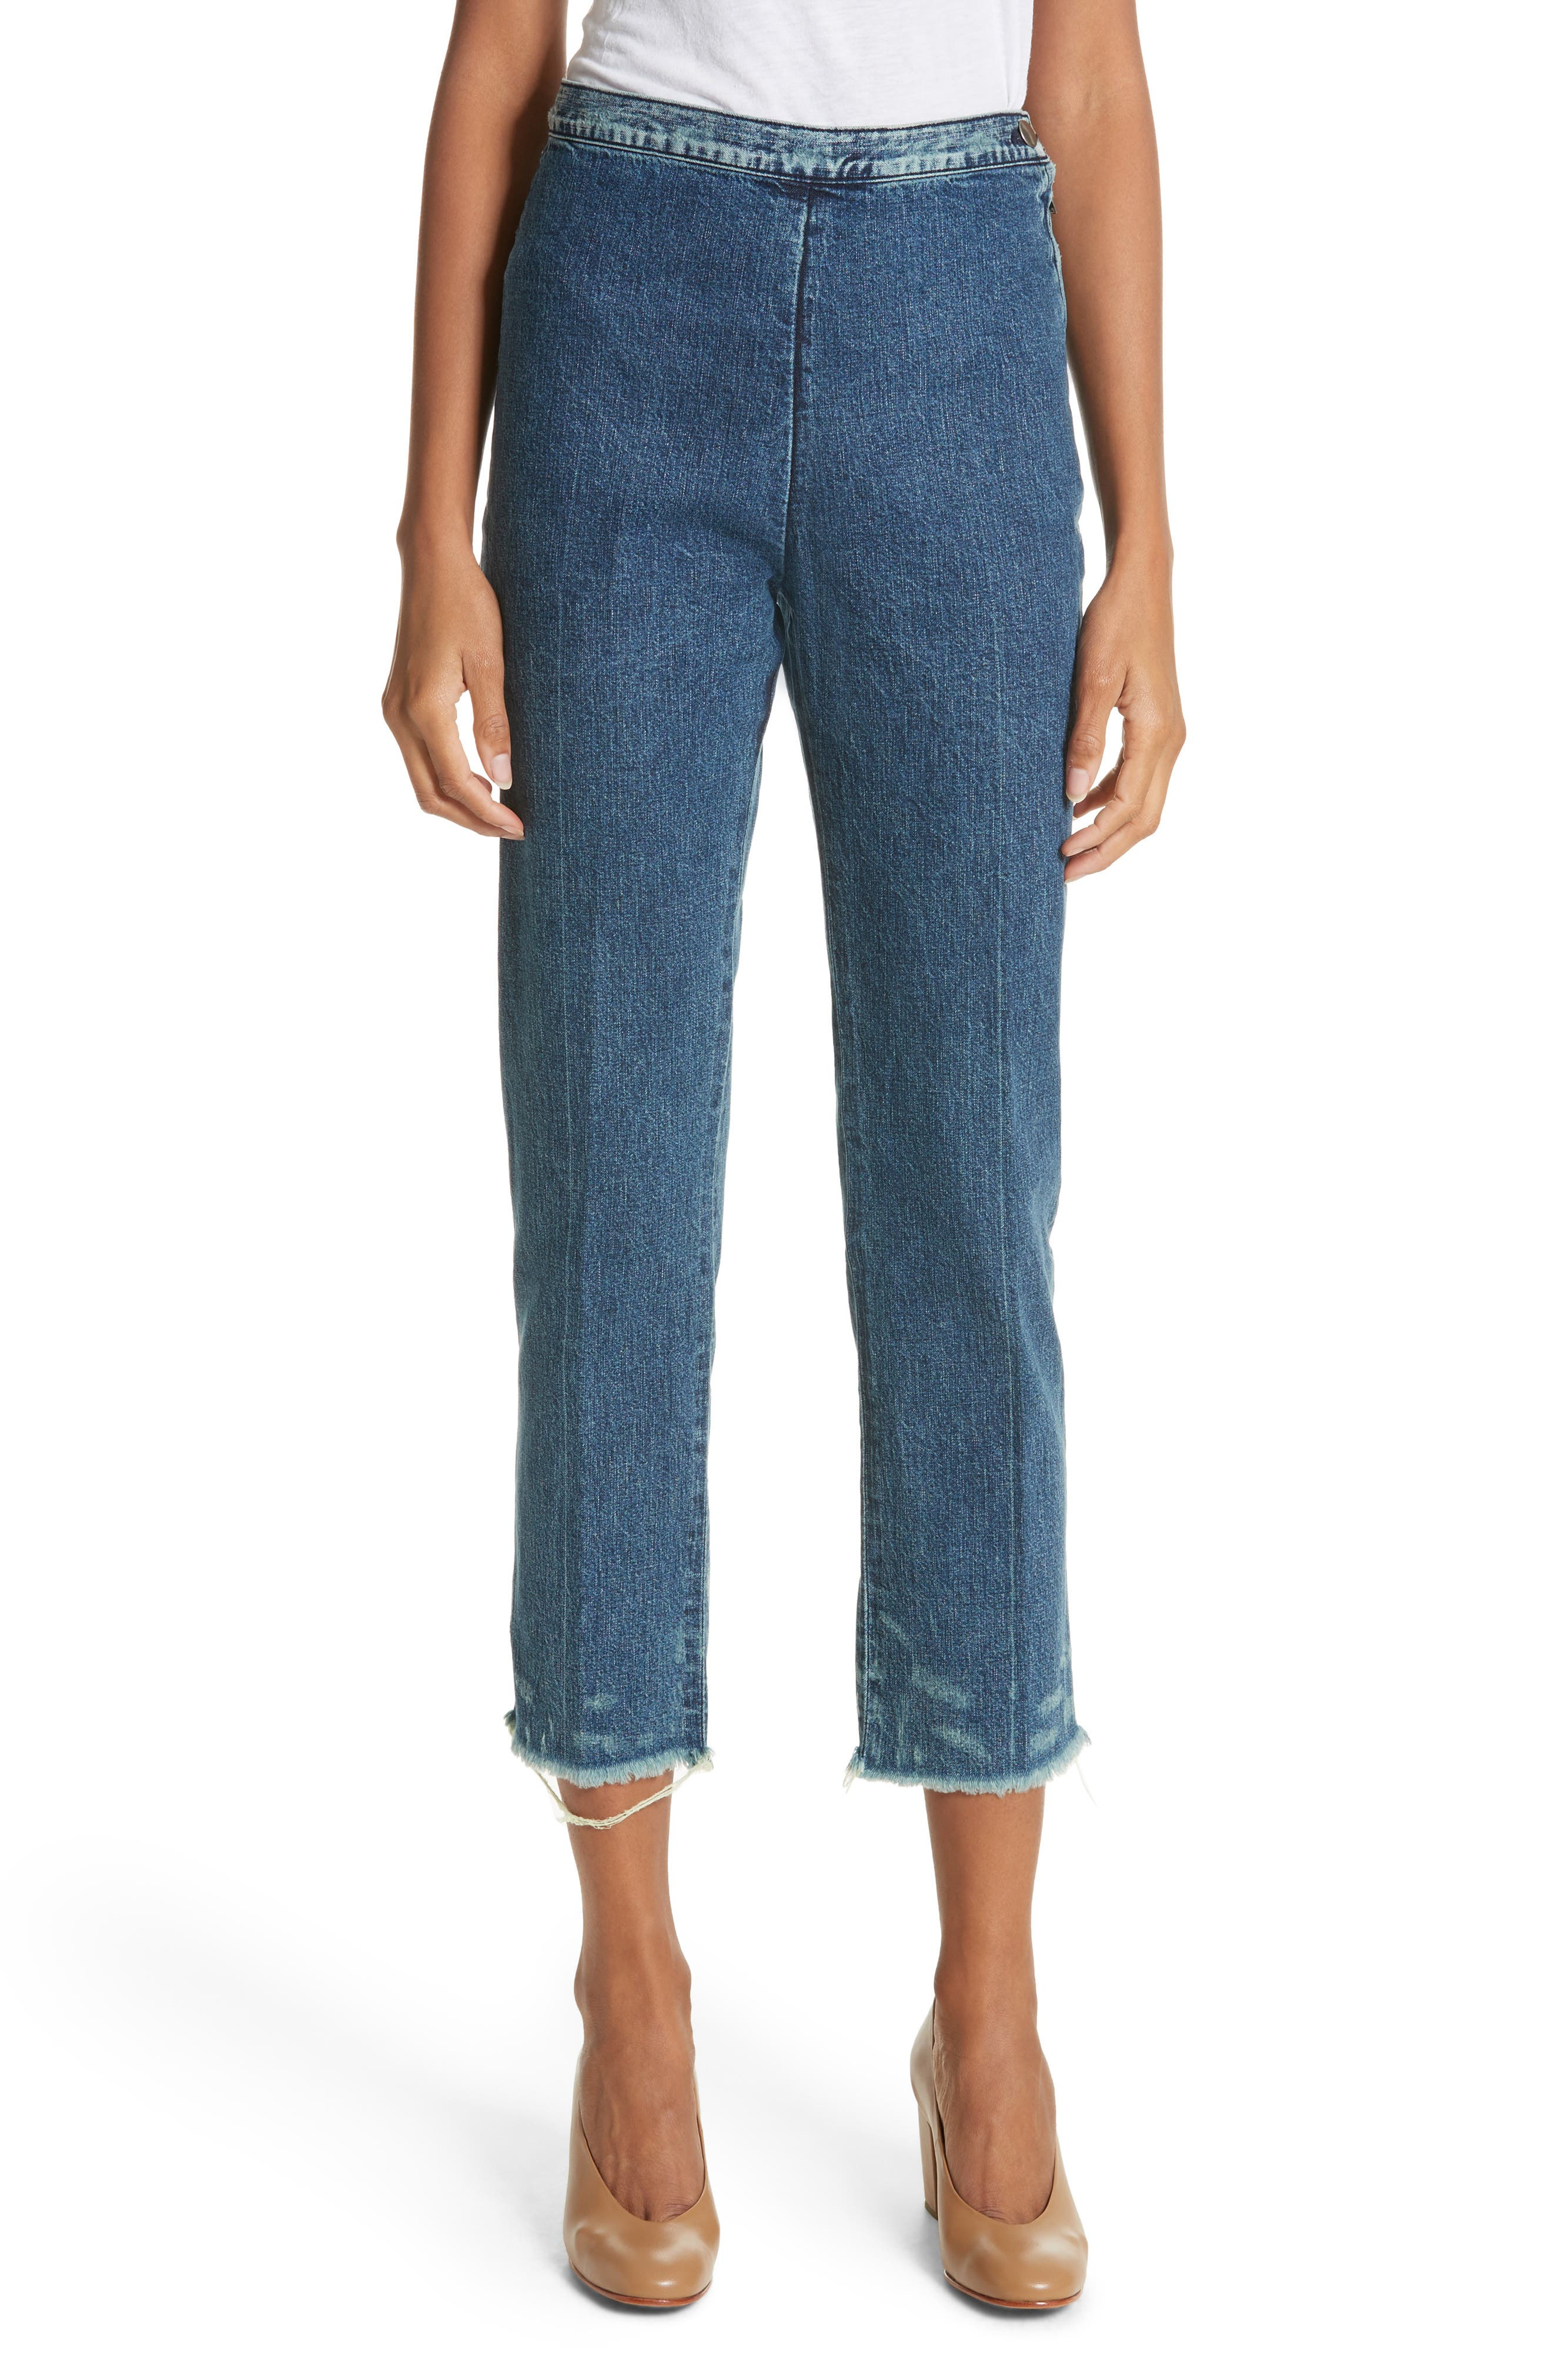 Fletcher Slim Straight Cropped Jeans,                             Main thumbnail 1, color,                             420